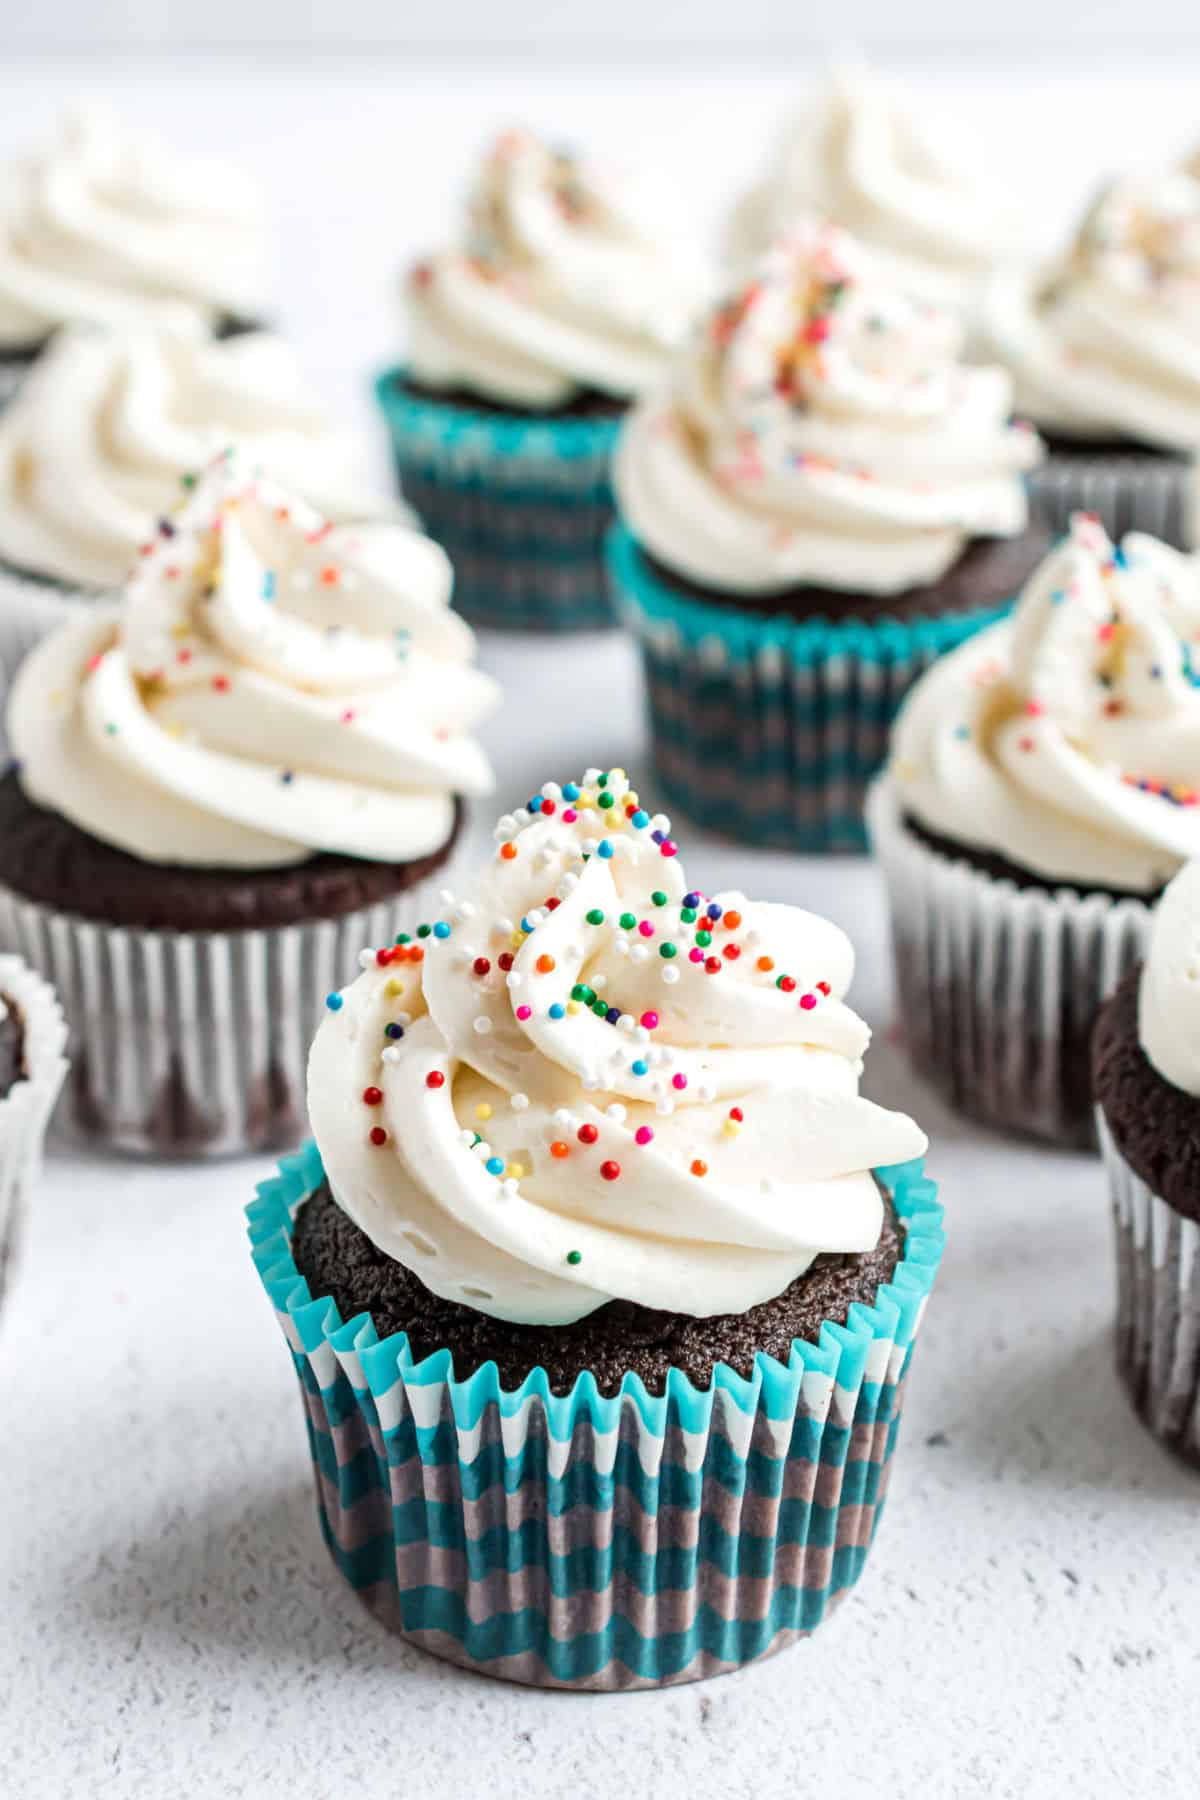 Vanilla buttercream frosting piped onto chocolate cupcakes with sprinkles.